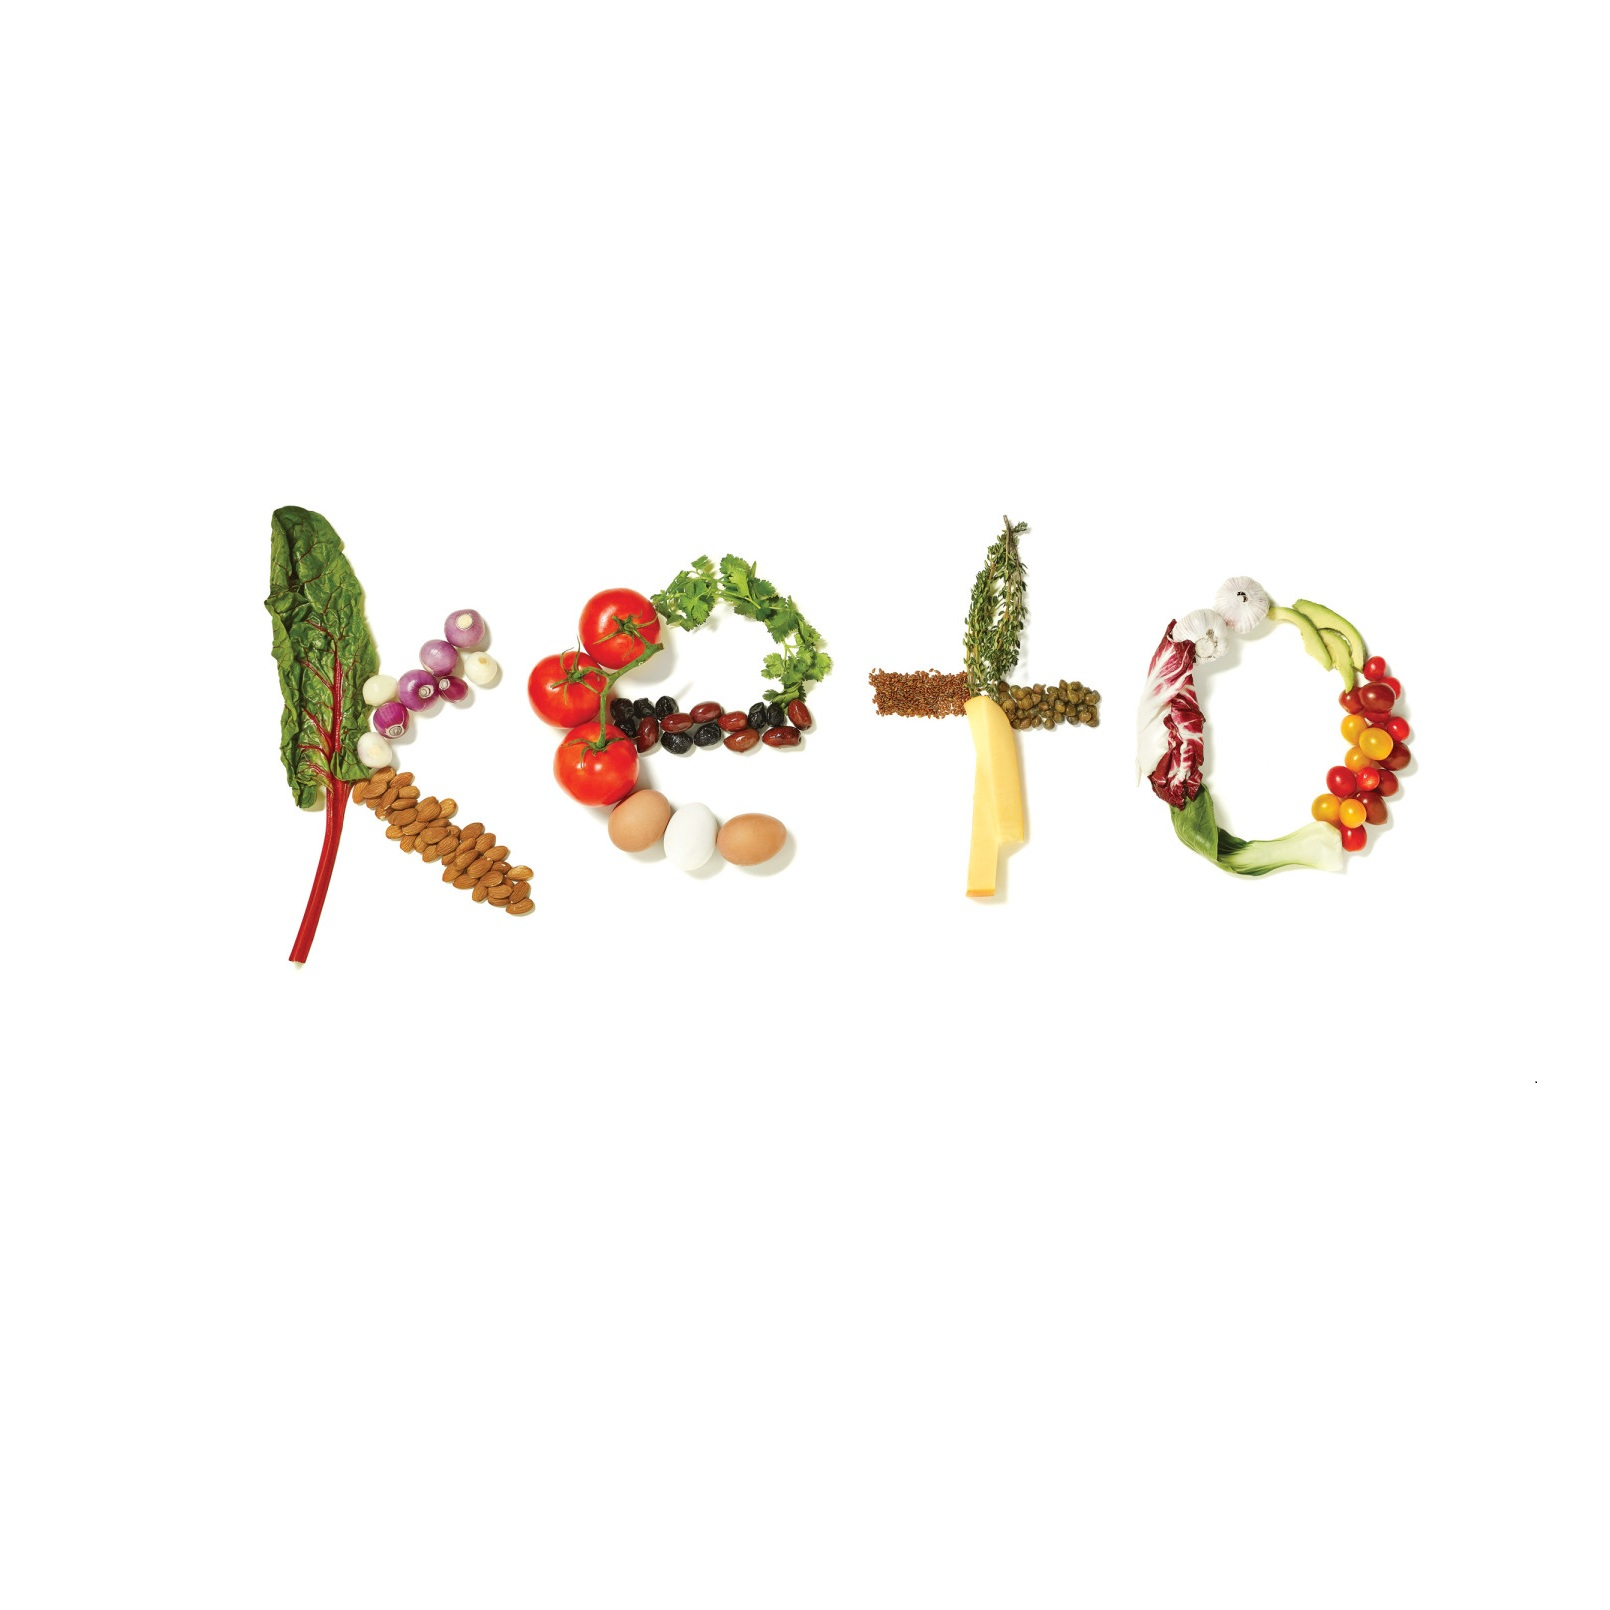 What Can You Eat On A Keto Diet? -